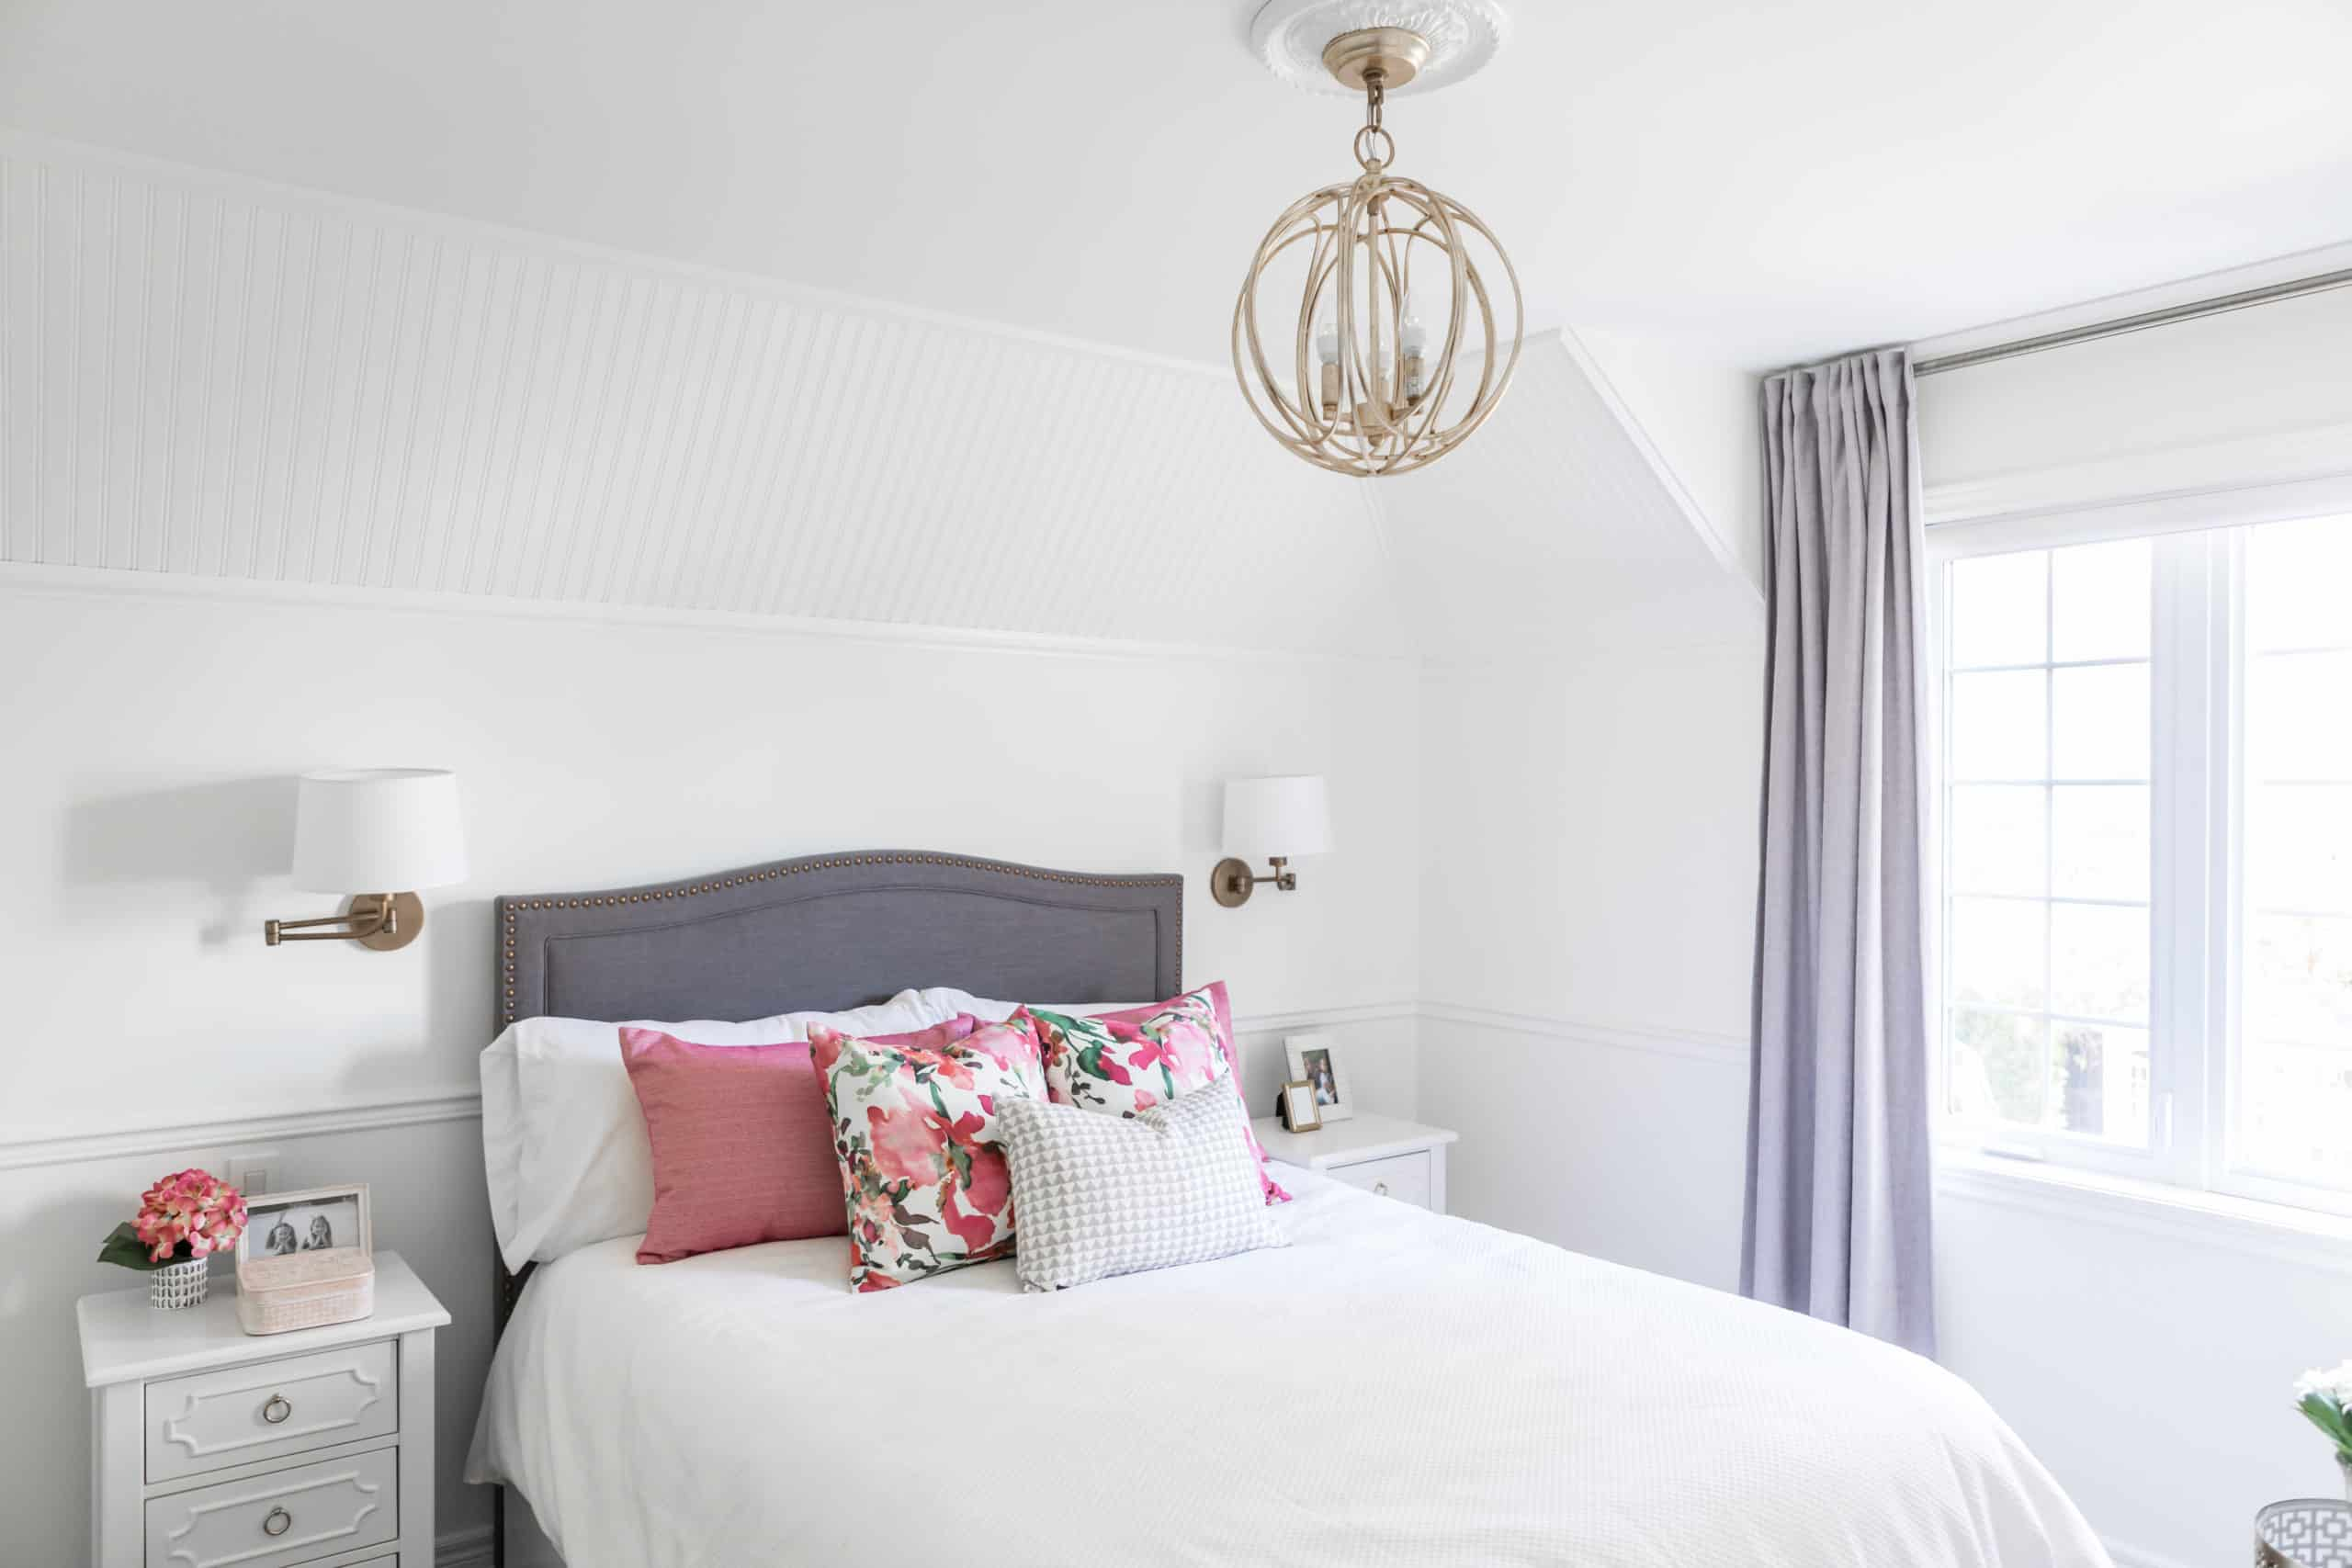 Spherical chandelier above a white and purple bed